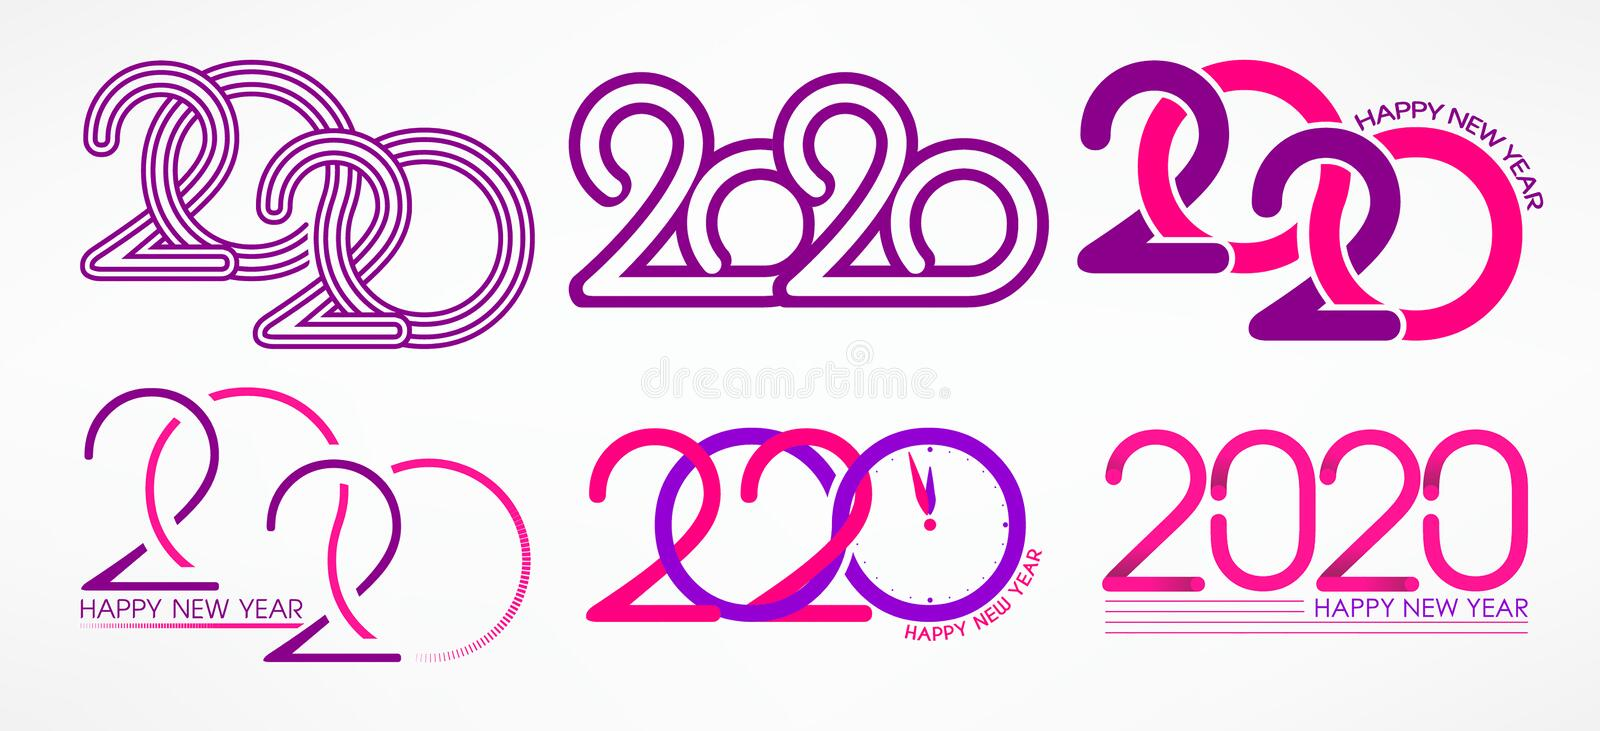 Set of New Year logos. Happy new year 2020 lettering templates. Isolated vector objects on a light background. Christmas. vector illustration